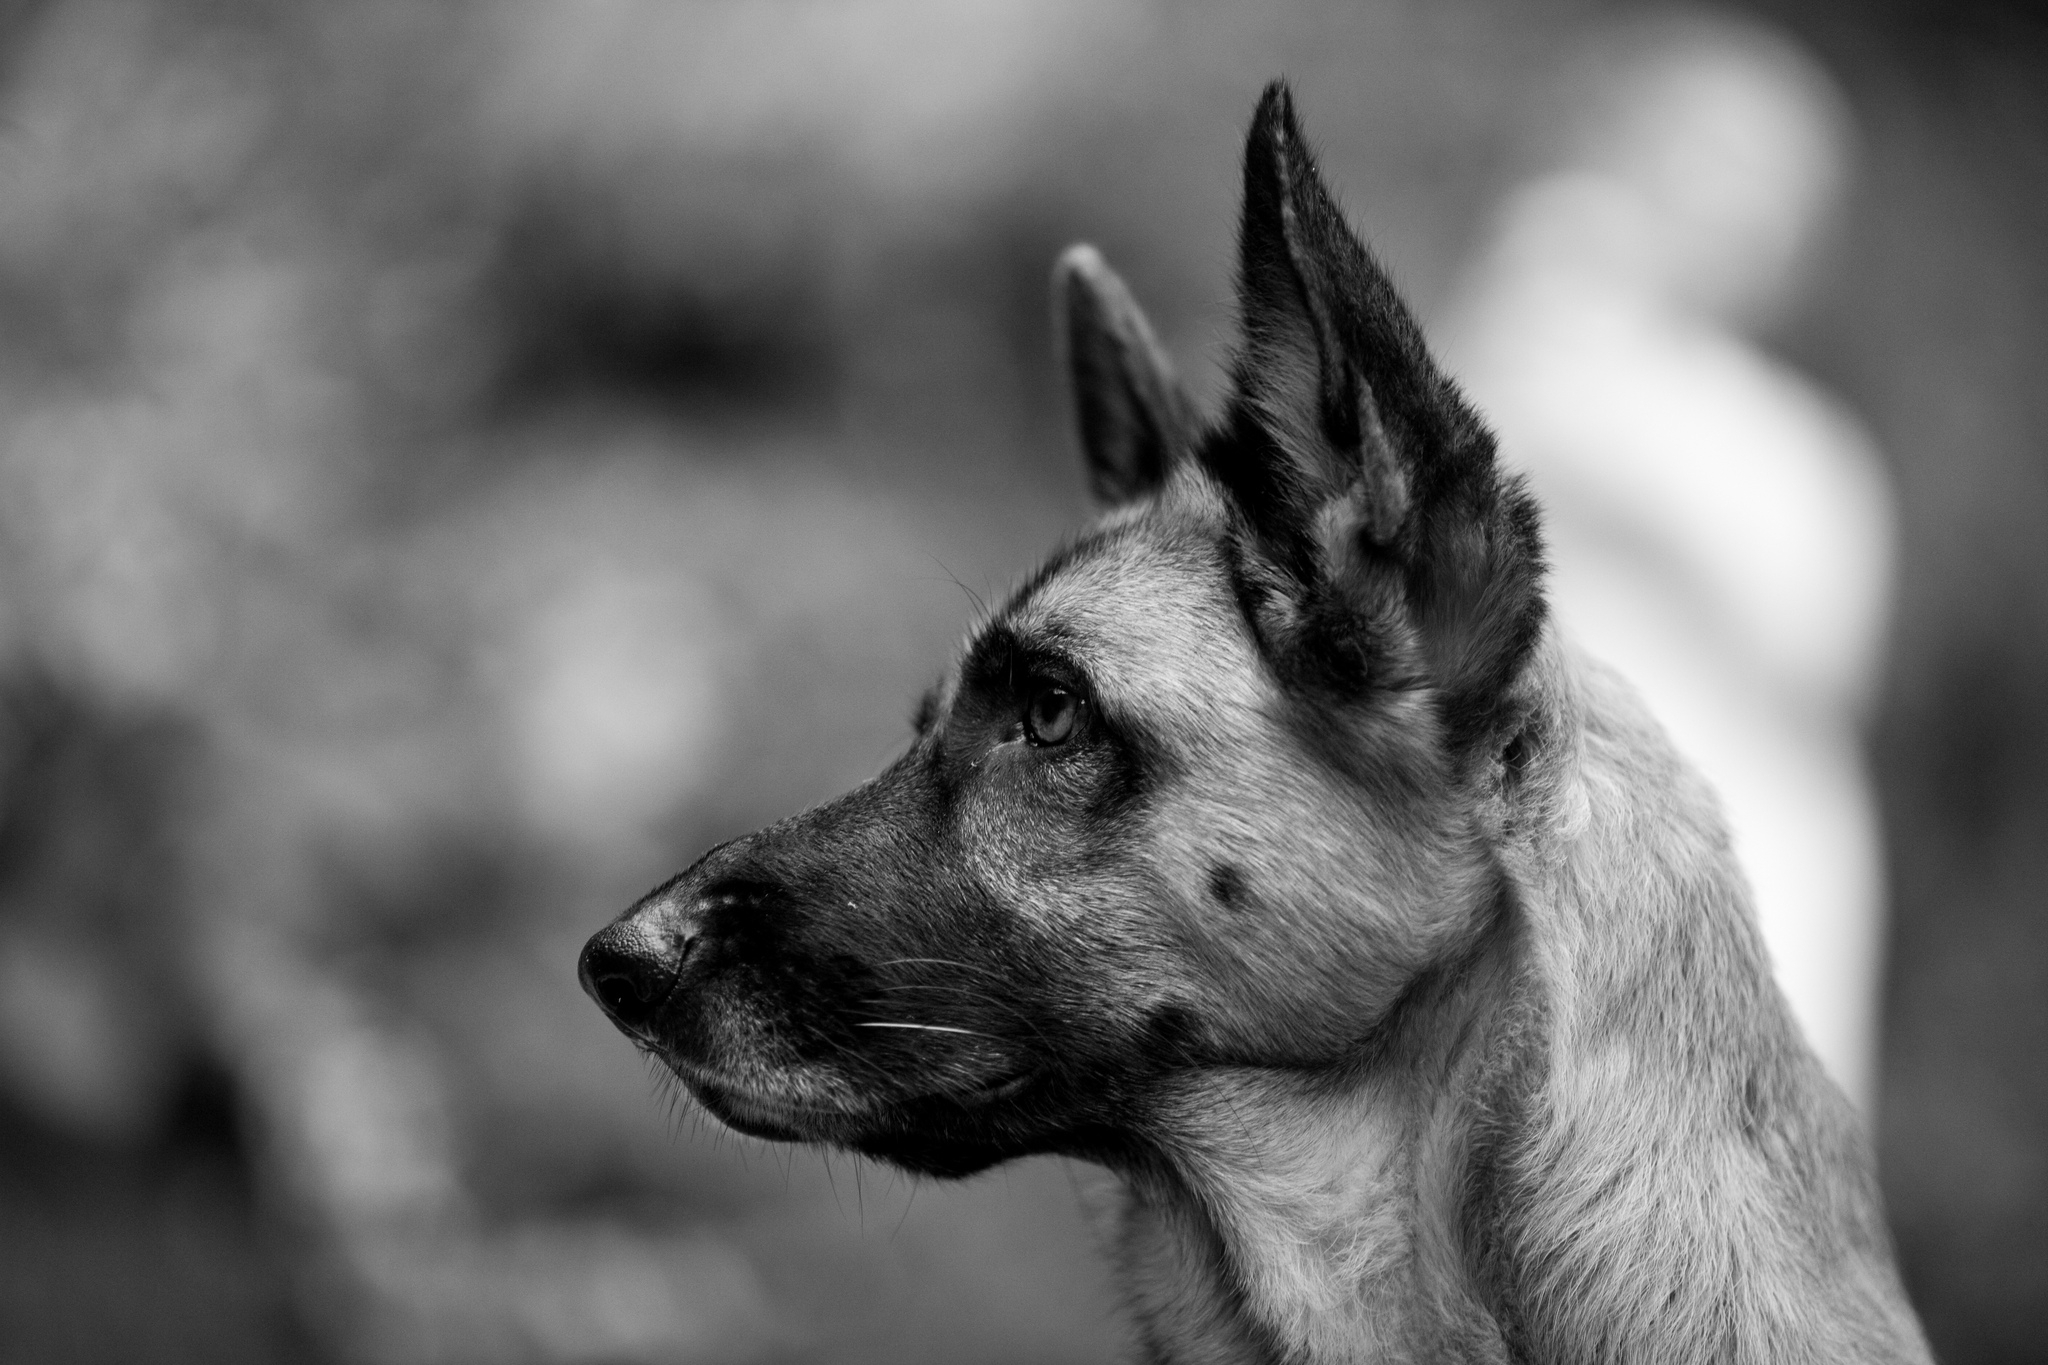 dog wallpaper hd black and white